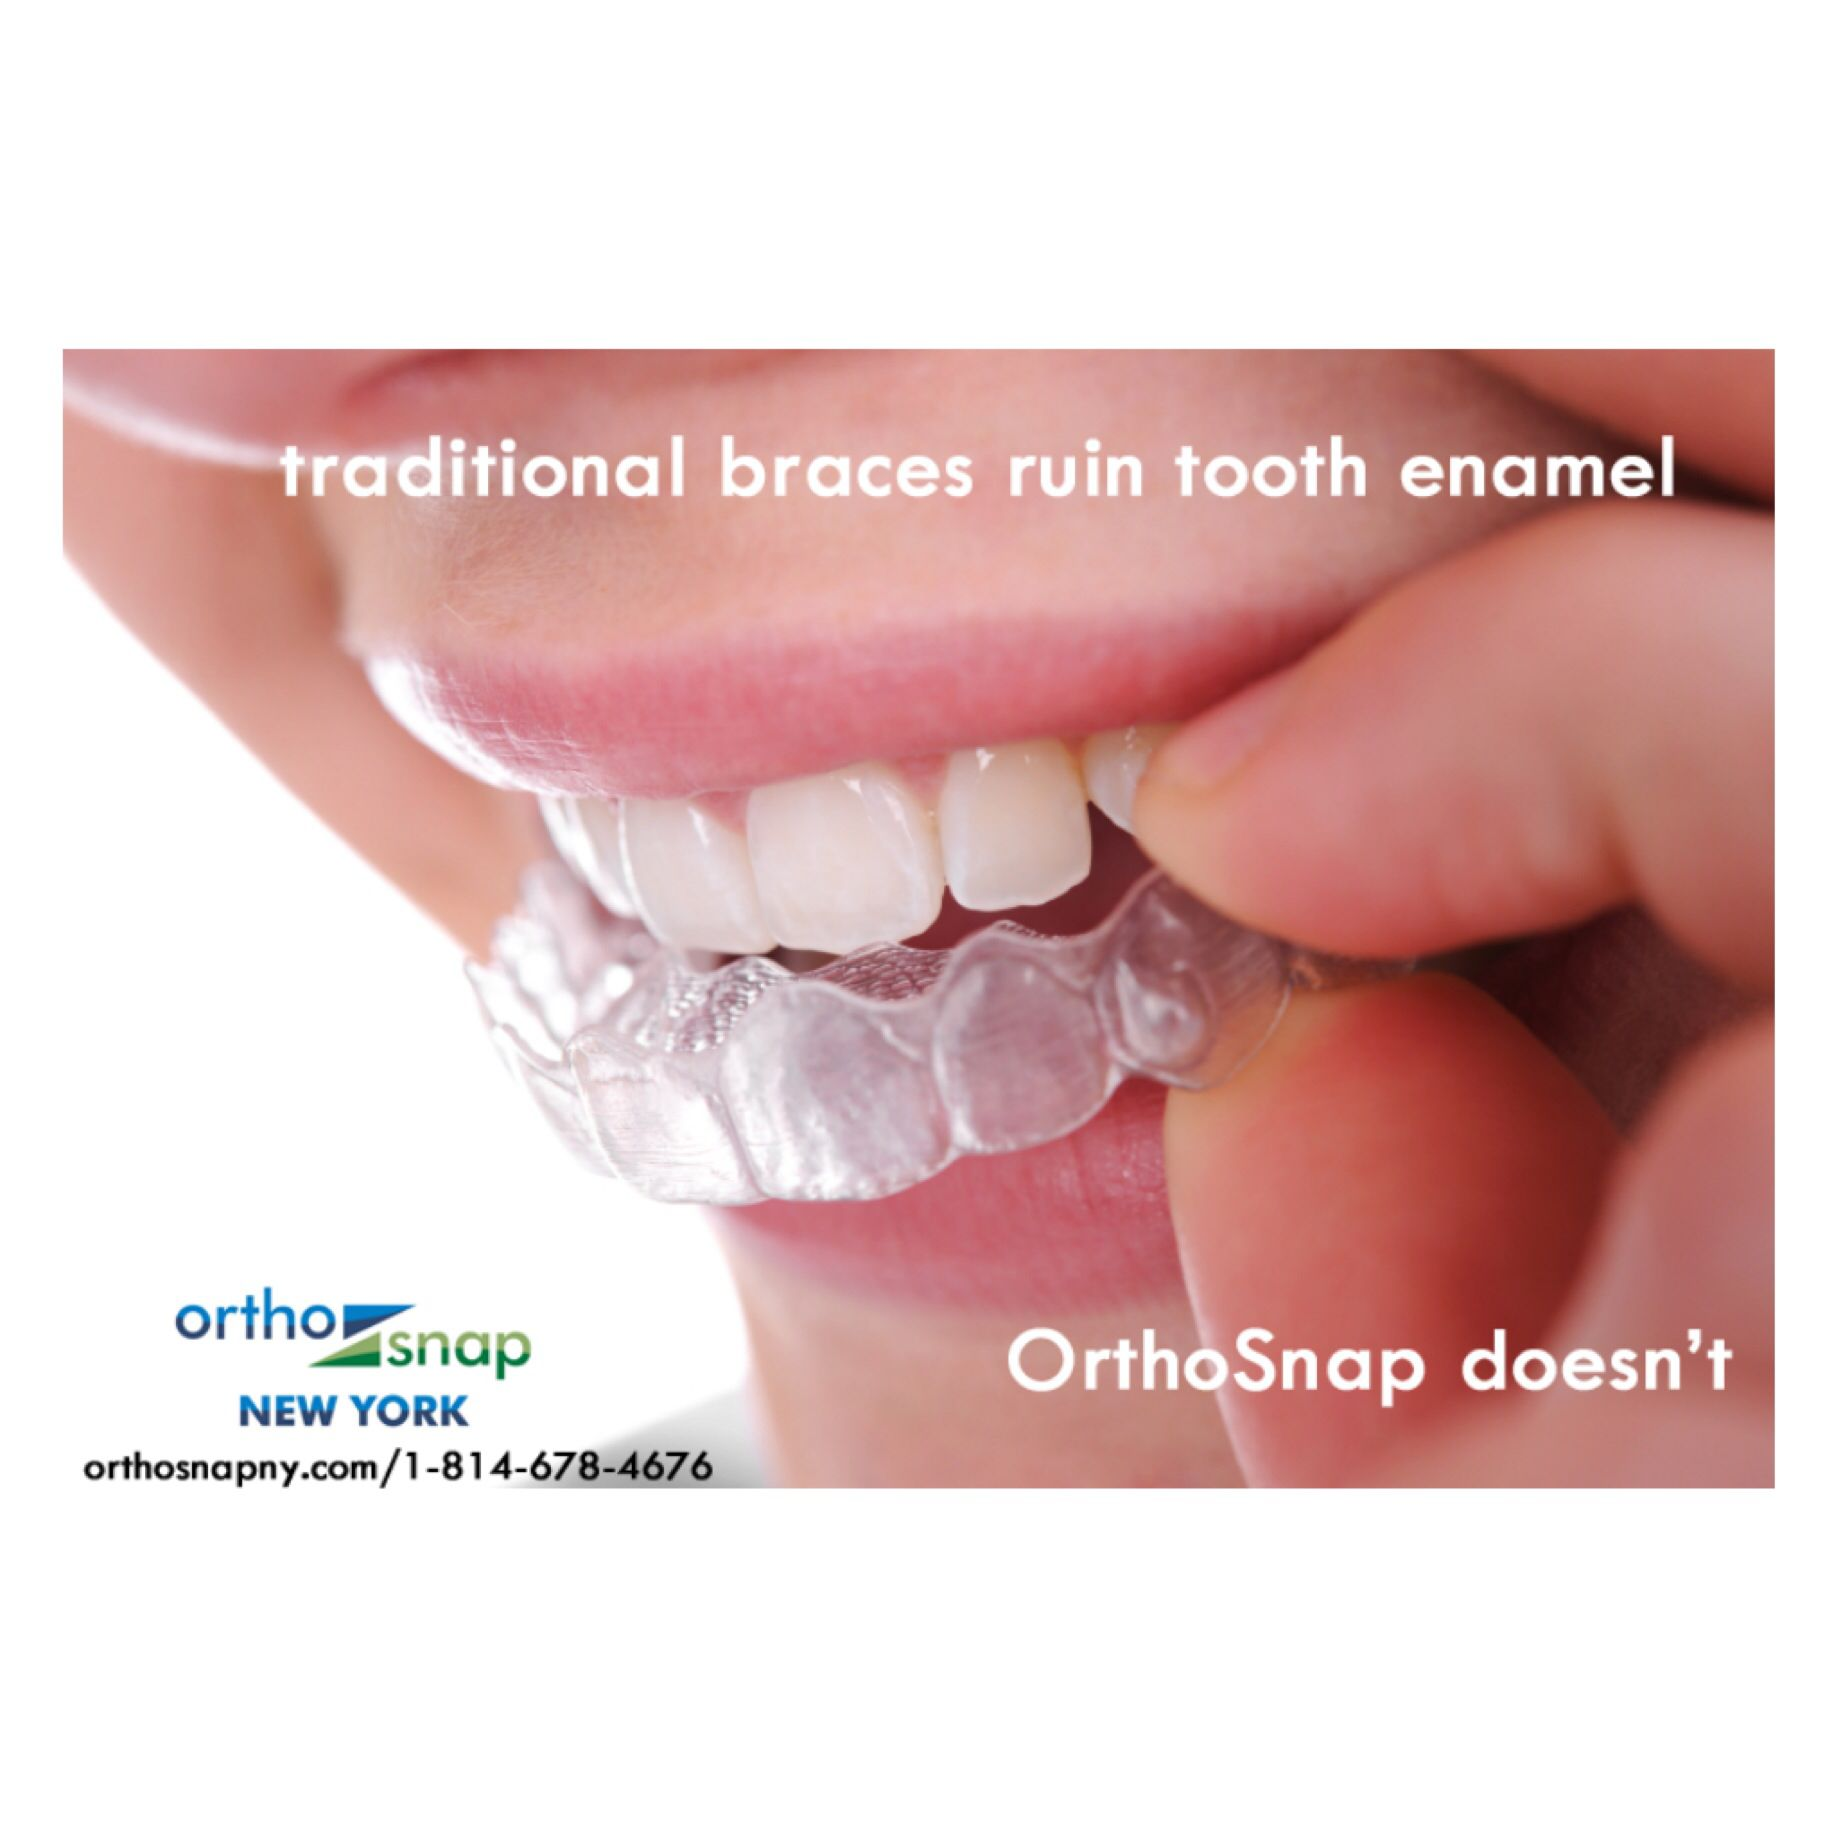 Get STRAIGHT TEETH & SMILE WITH CONFIDENCE http